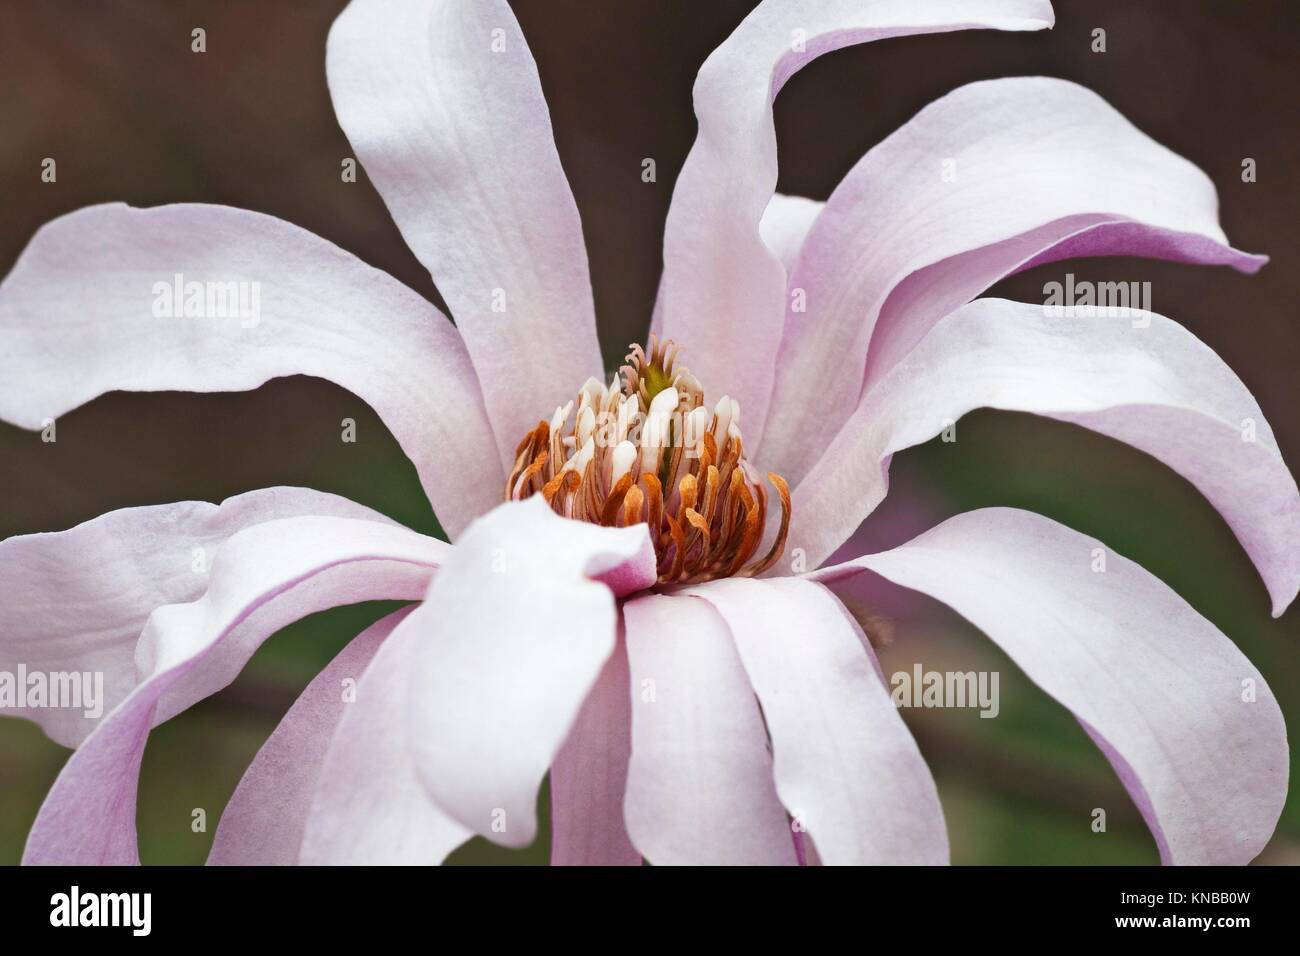 Leonard Messel loebner magnolia flower (Magnolia x loebneri Leonard Messel). Stock Photo